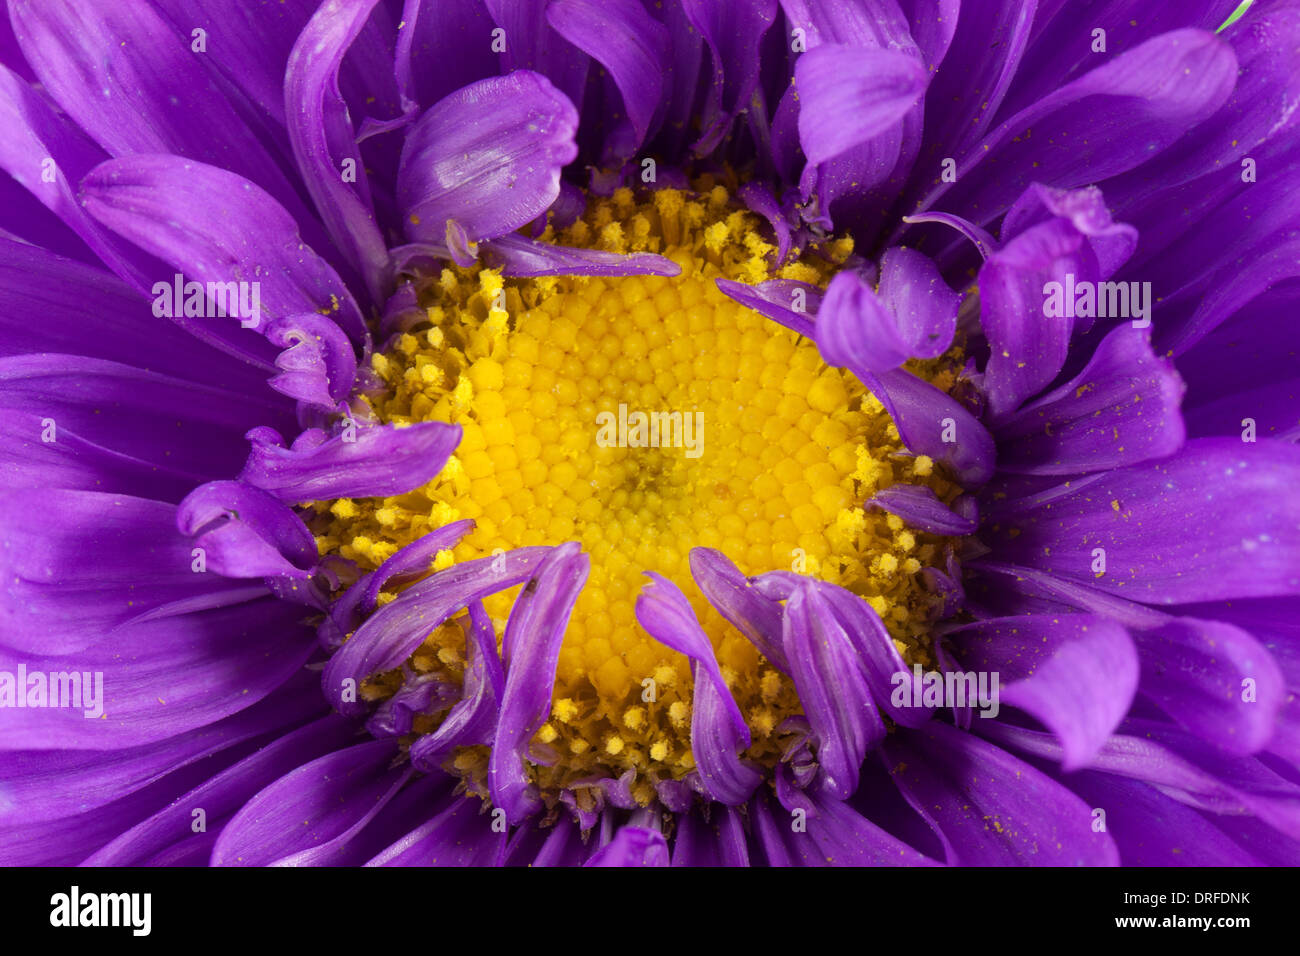 White flower with purple center stock photos white flower with purple flower stock image mightylinksfo